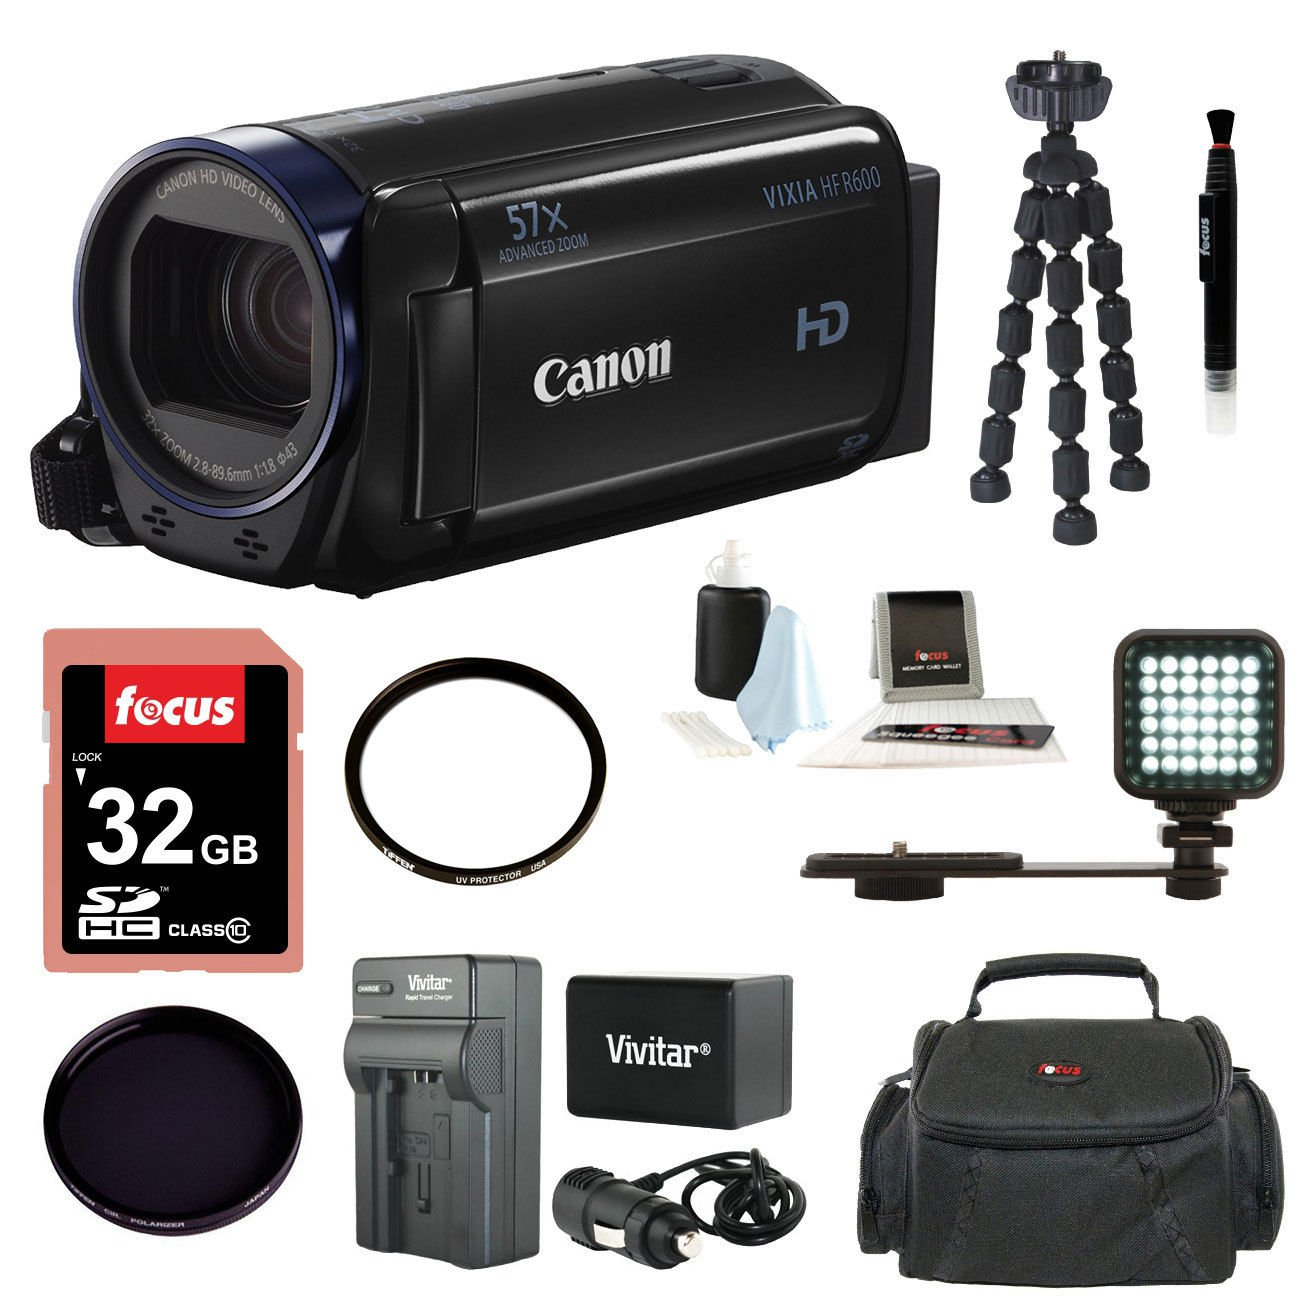 Brand New Canon Vixia HF R600 Camcorder (Black) with 64GB Deluxe Accessory Bundle